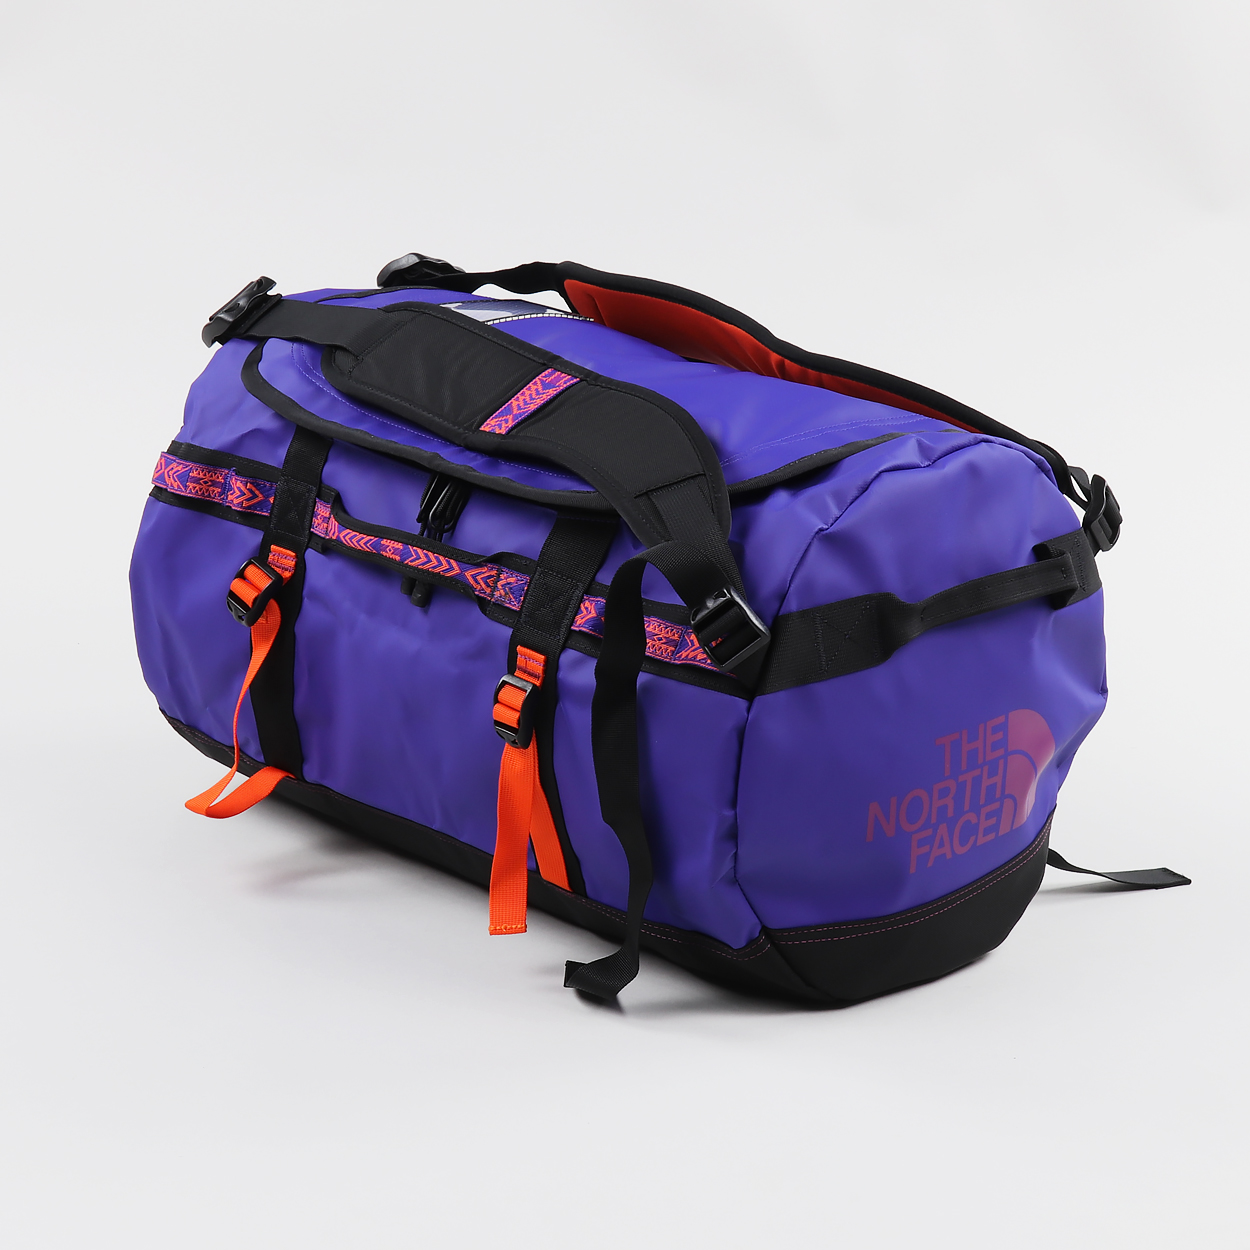 fba2554150 The North Face Luggage 92 Rage Base Camp Duffel Bag S Aztec Blue £100.00